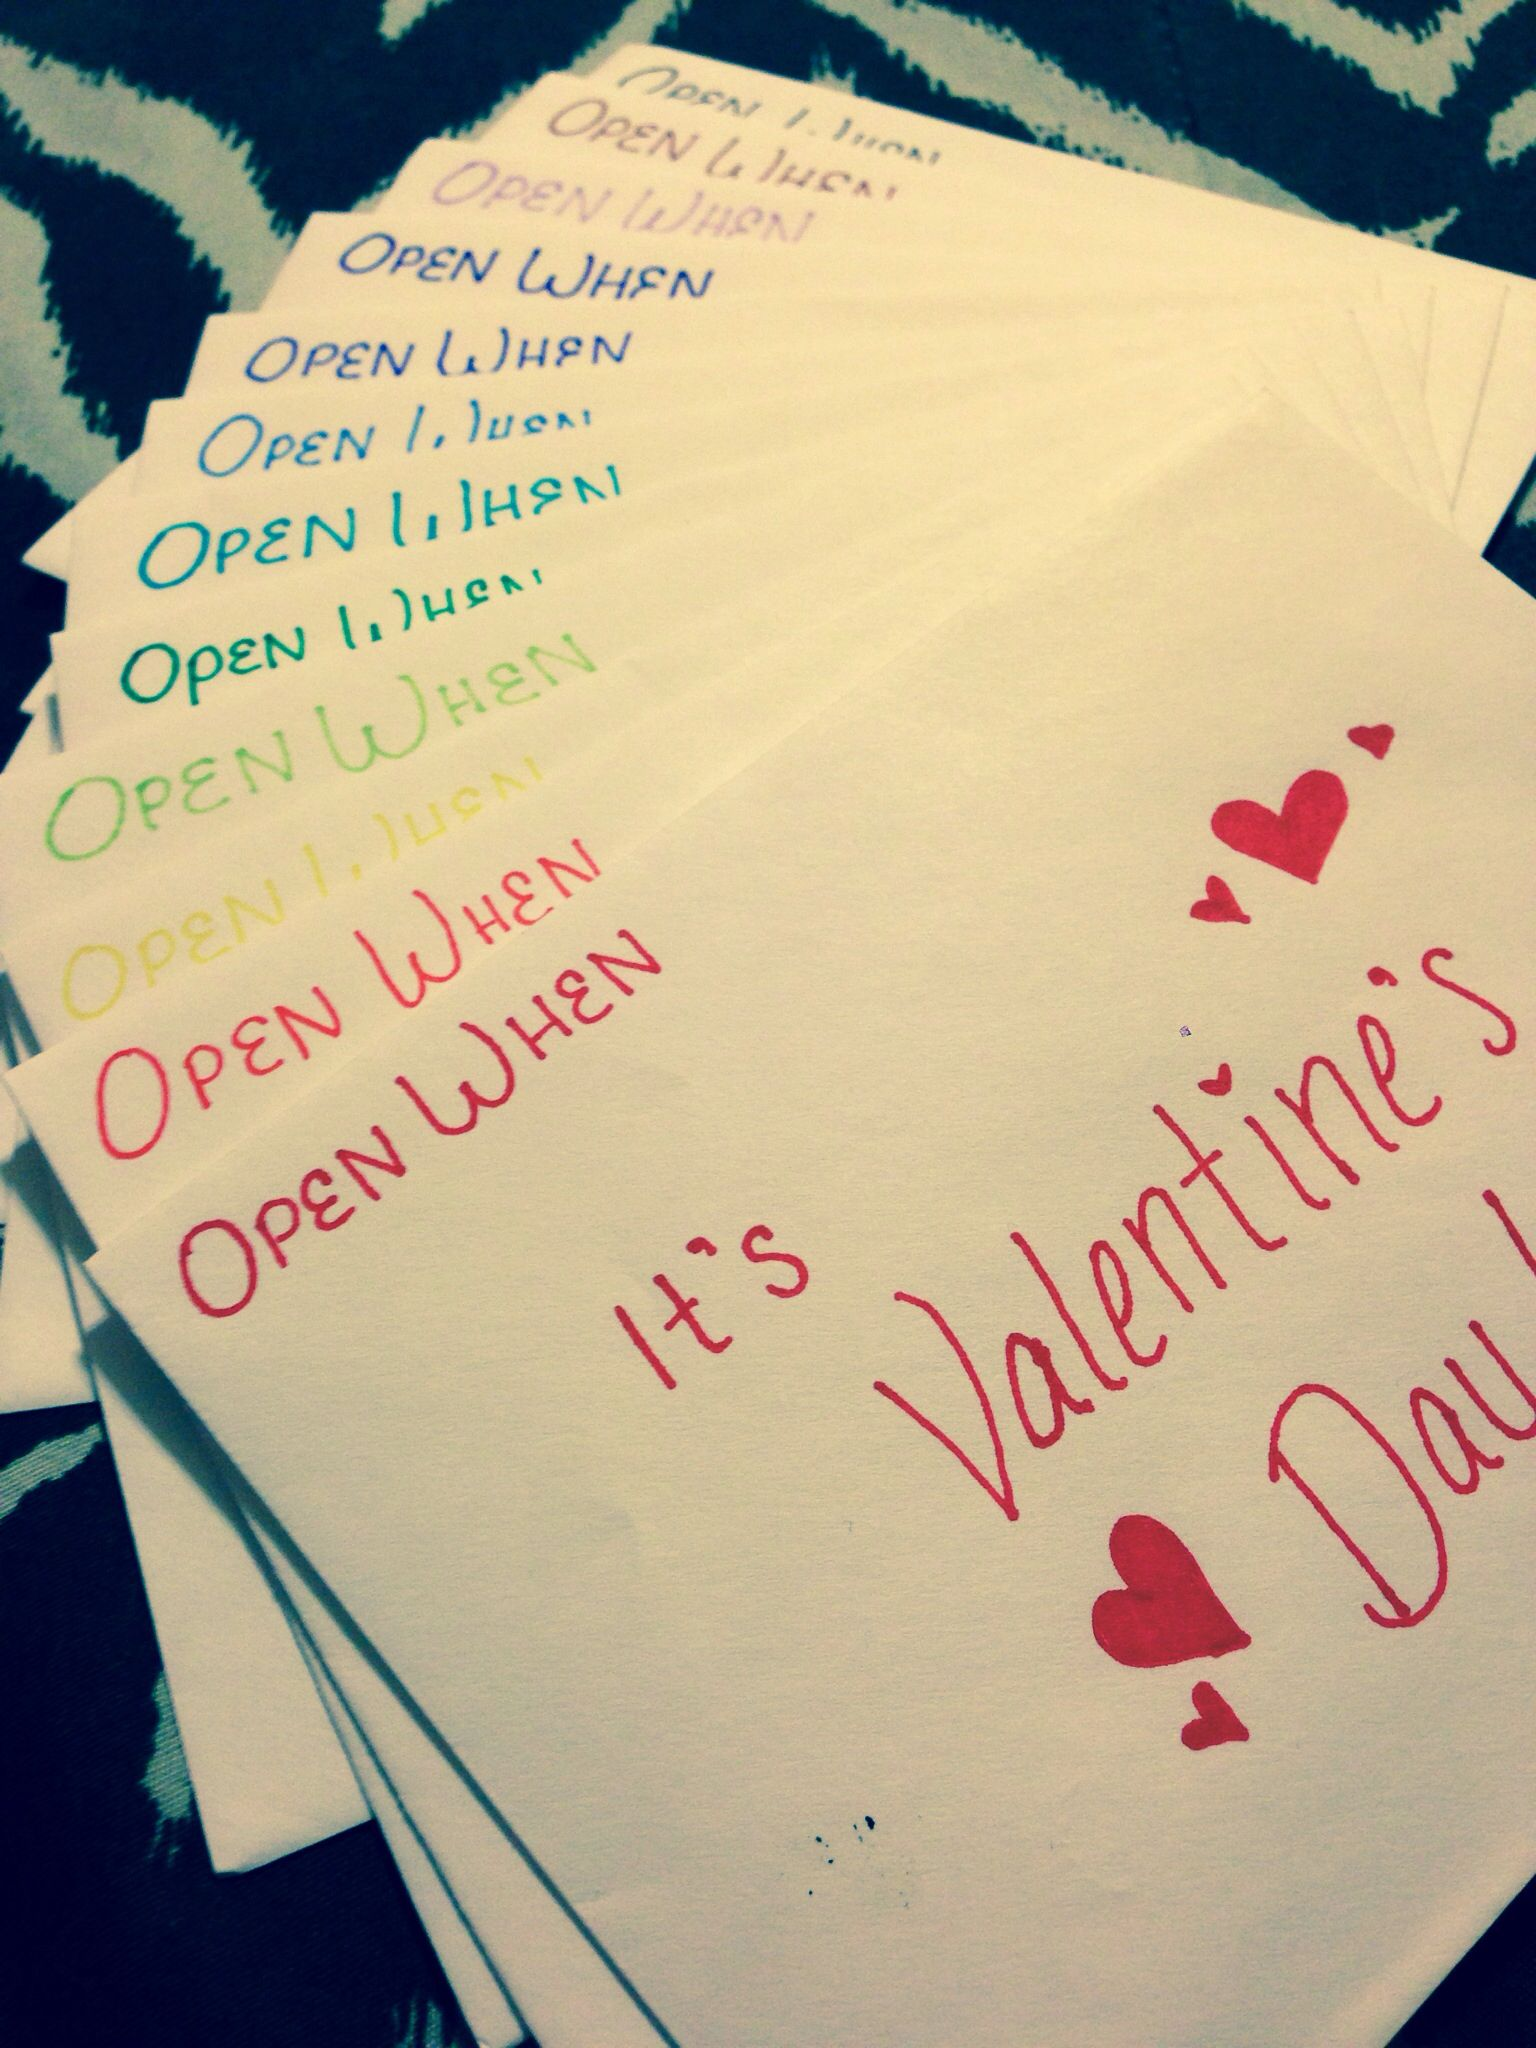 Open when letters for my boyfriend great diy gift for him for A perfect gift for your boyfriend